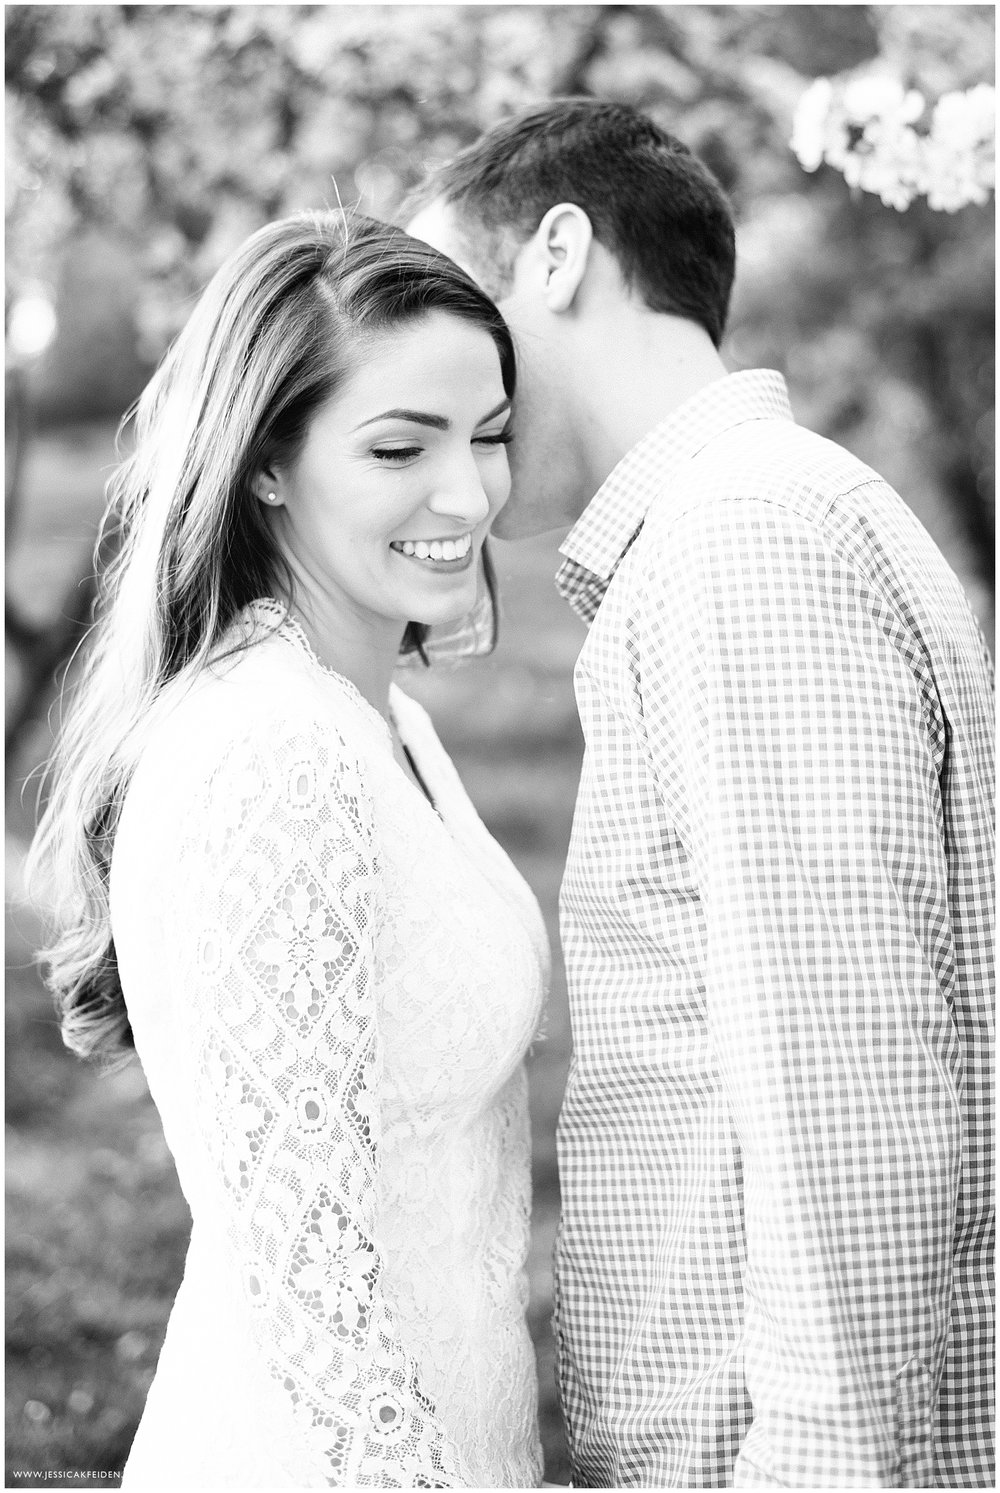 Jessica K Feiden Photography_Larz Anderson Park Engagement Session Photographer_0017.jpg